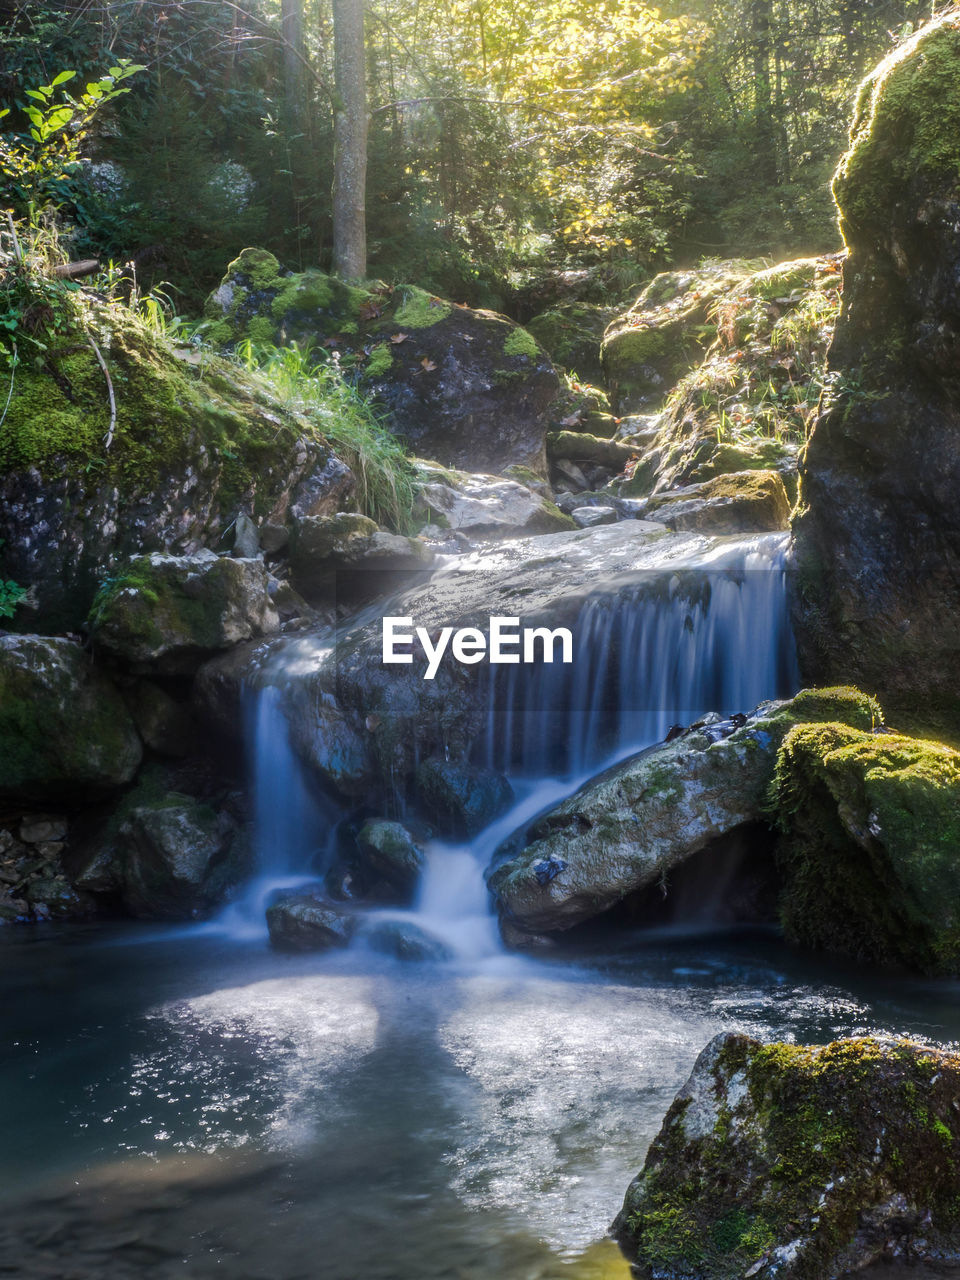 waterfall, water, rock, flowing water, rock - object, scenics - nature, solid, forest, beauty in nature, motion, long exposure, tree, nature, blurred motion, plant, flowing, day, land, environment, no people, outdoors, power in nature, rainforest, falling water, stream - flowing water